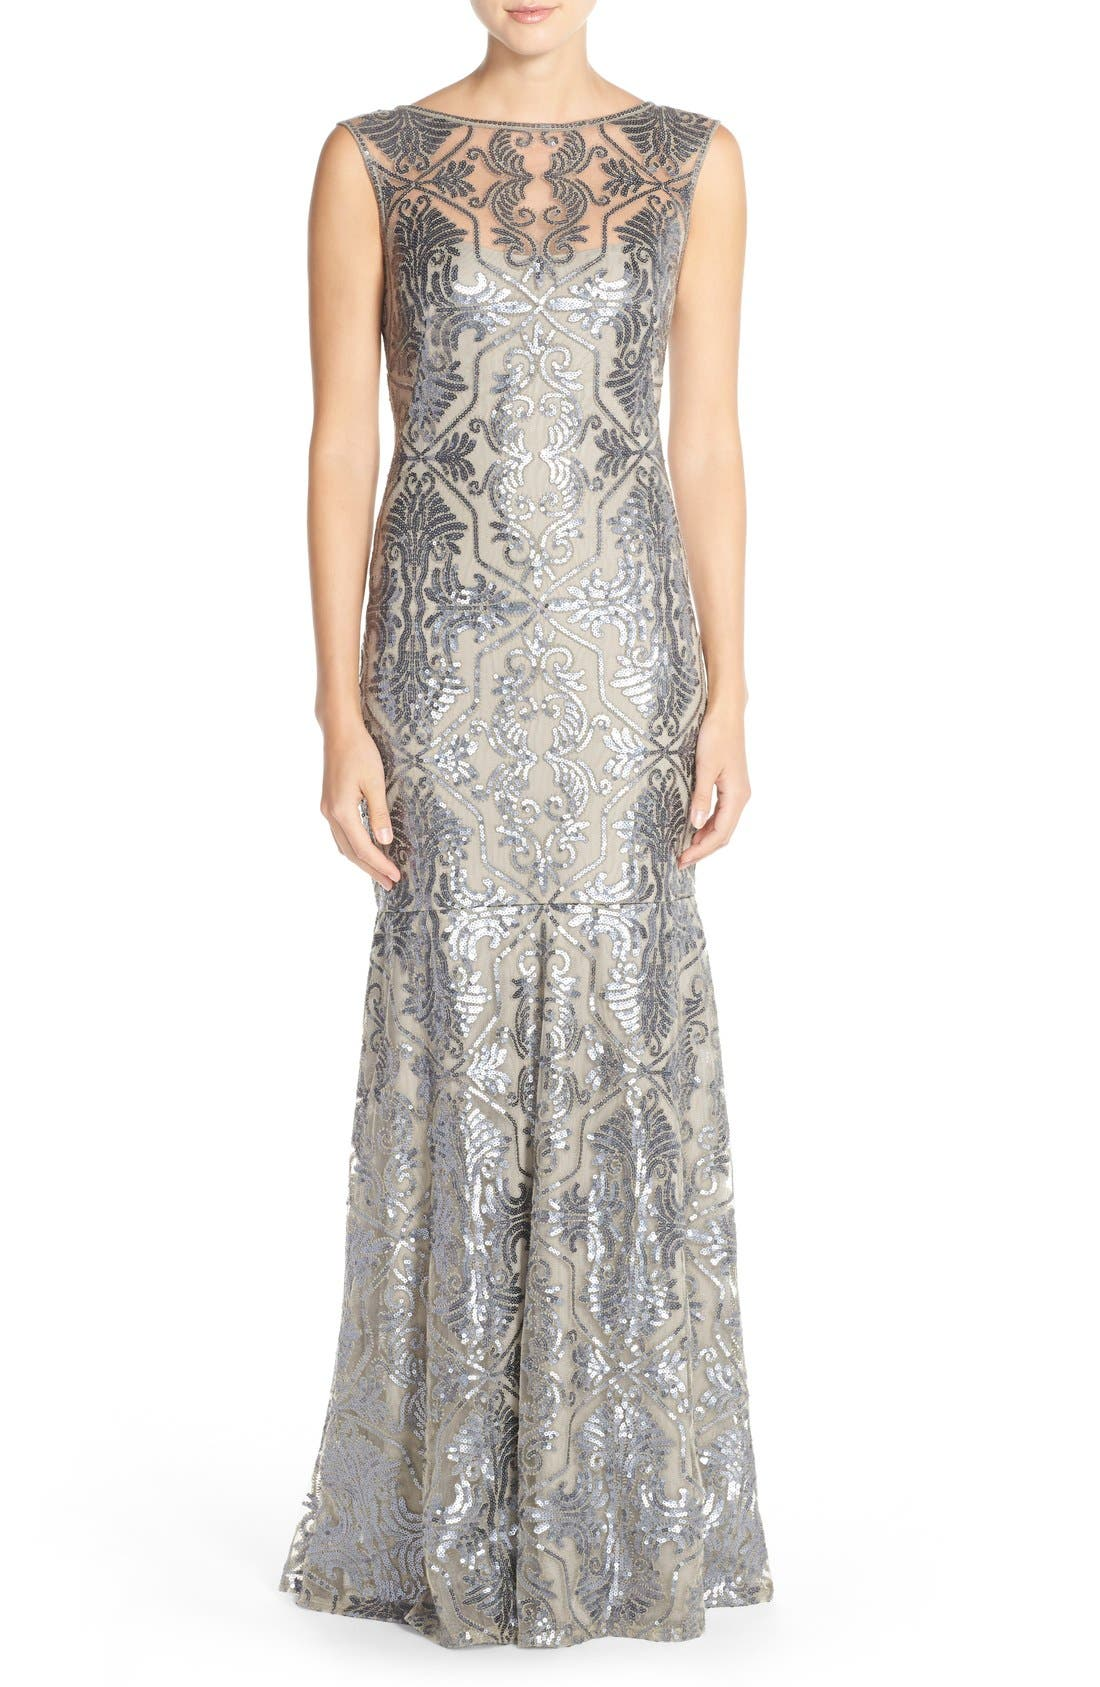 Alternate Image 1 Selected - Tadashi Shoji Sequin Tulle Mermaid Gown